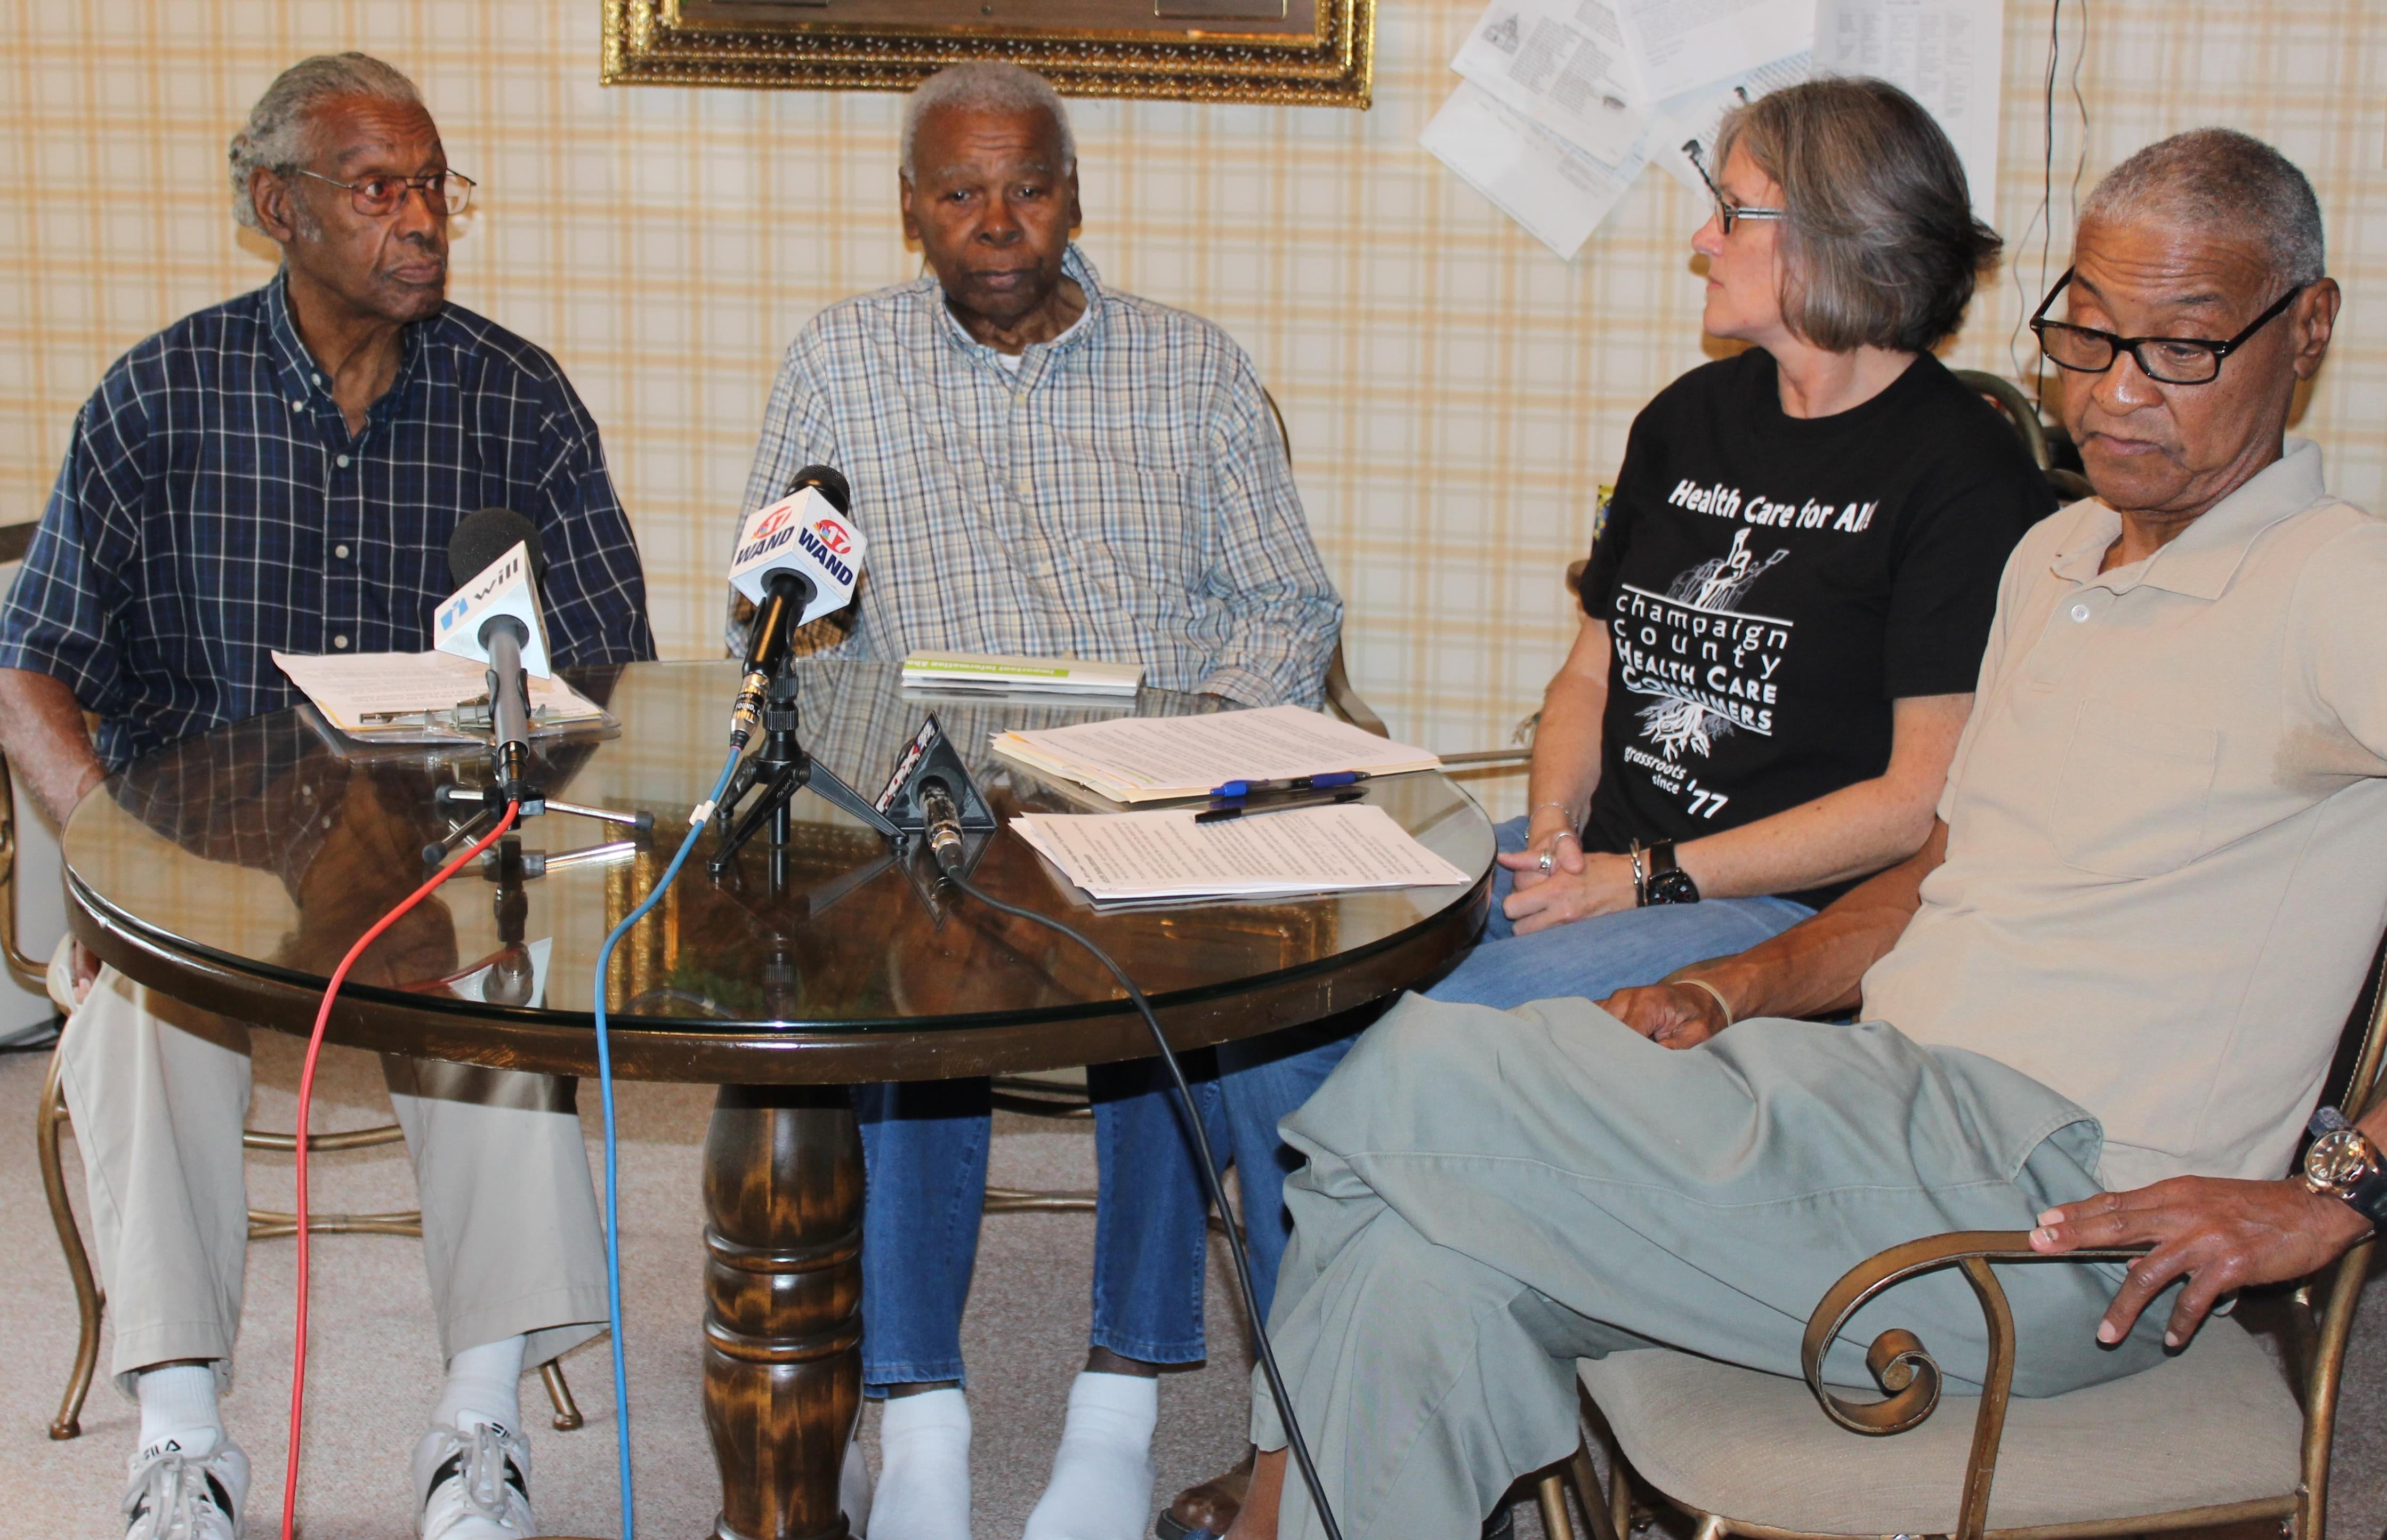 5th and Hill neighborhood residents M.D. Pelmore, Ebbie Cook, and Jerry Lewis meet with Claudia Lennhoff of Champaign County Health Care Consumers Tuesday at Pelmore's home in Champaign